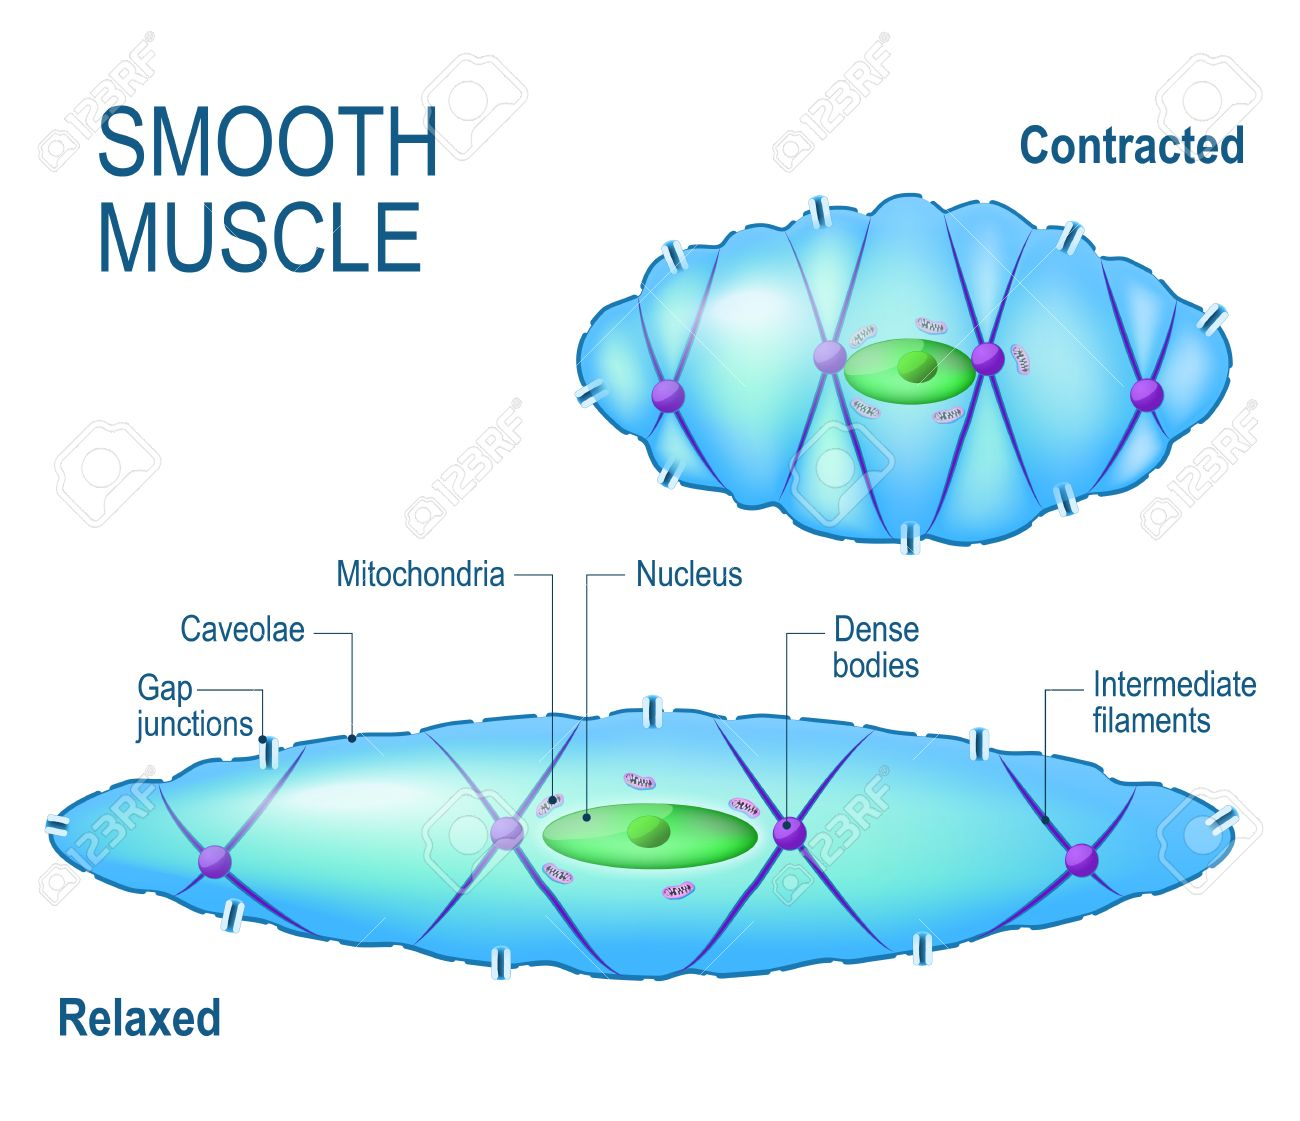 Smooth Muscle Cell Anatomy Of A Relaxed And Contracted Smooth